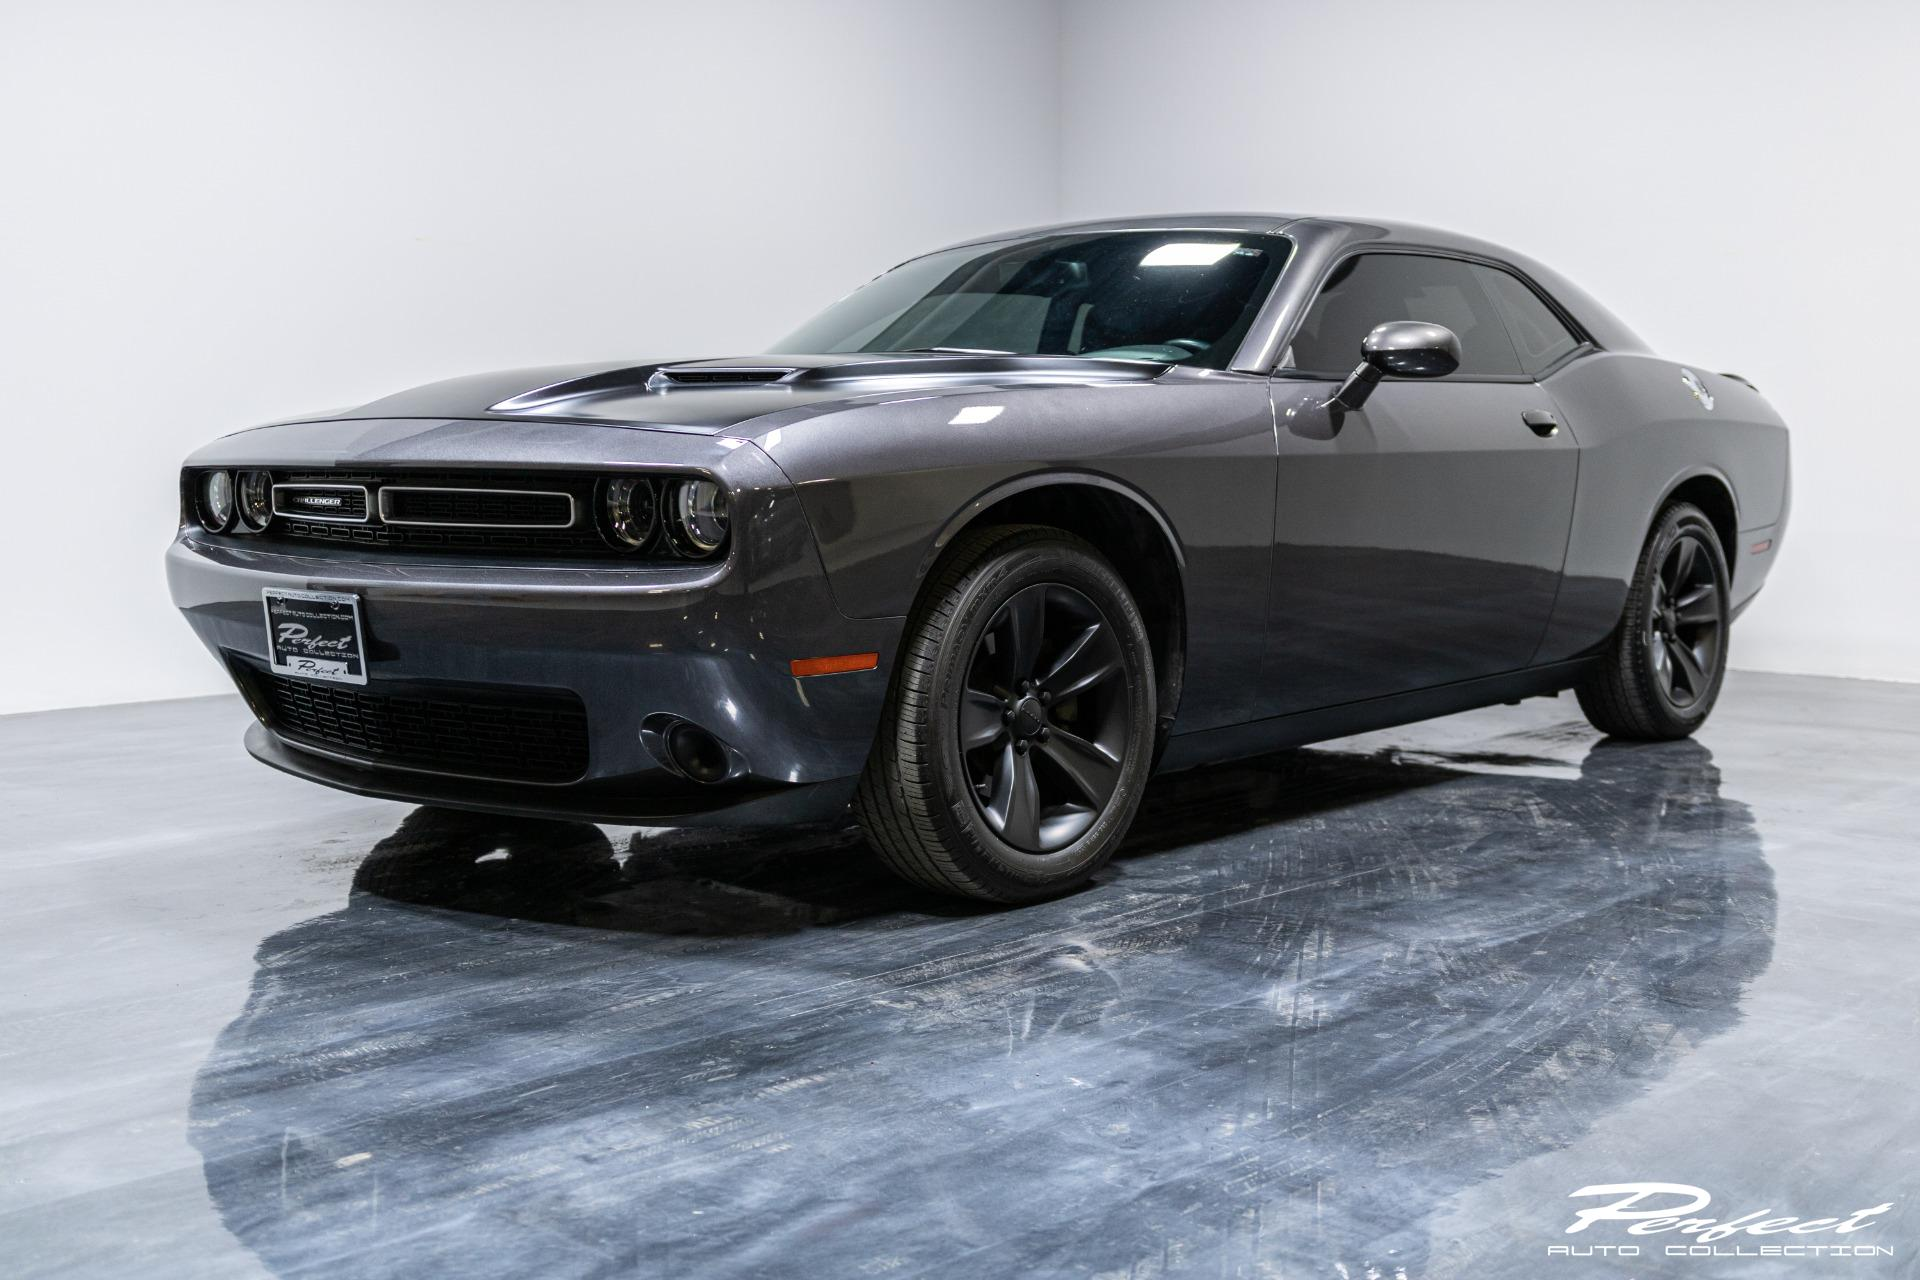 Used 2016 Dodge Challenger SXT for sale Sold at Perfect Auto Collection in Akron OH 44310 1